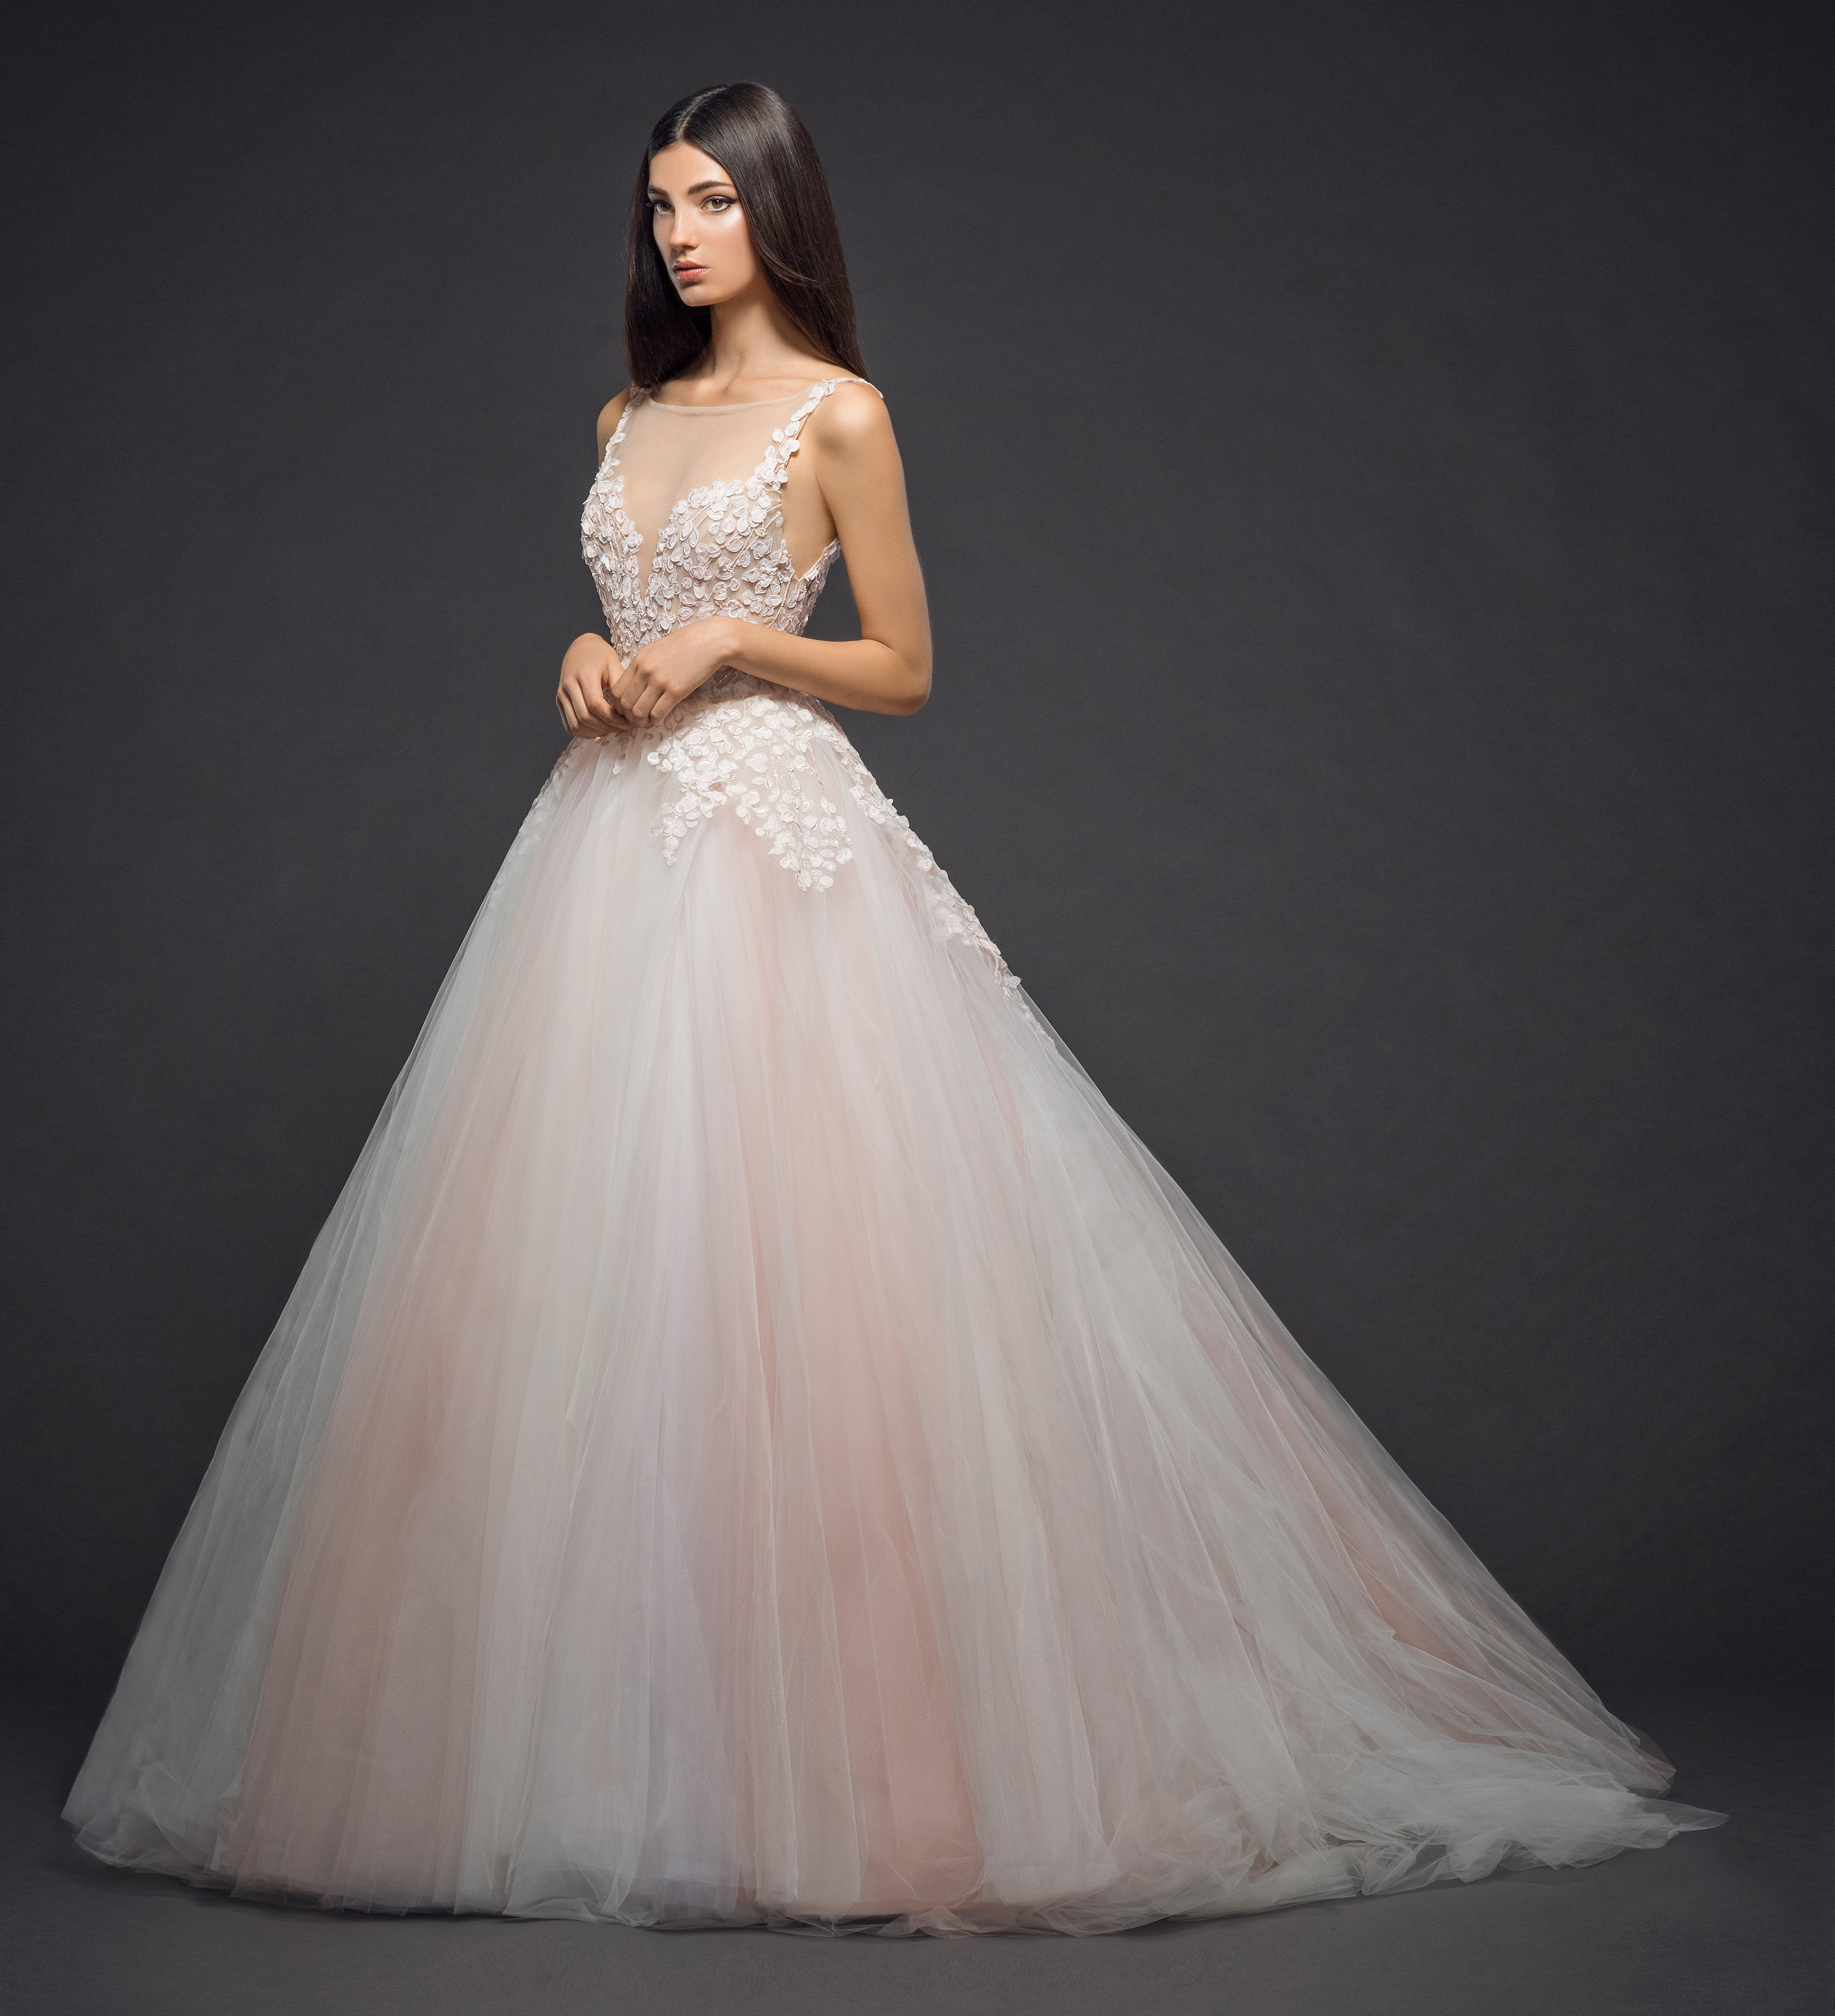 Tulle Wedding Ball Gowns: Floral Embroidery With An Illusion Neck And Tulle Skirt